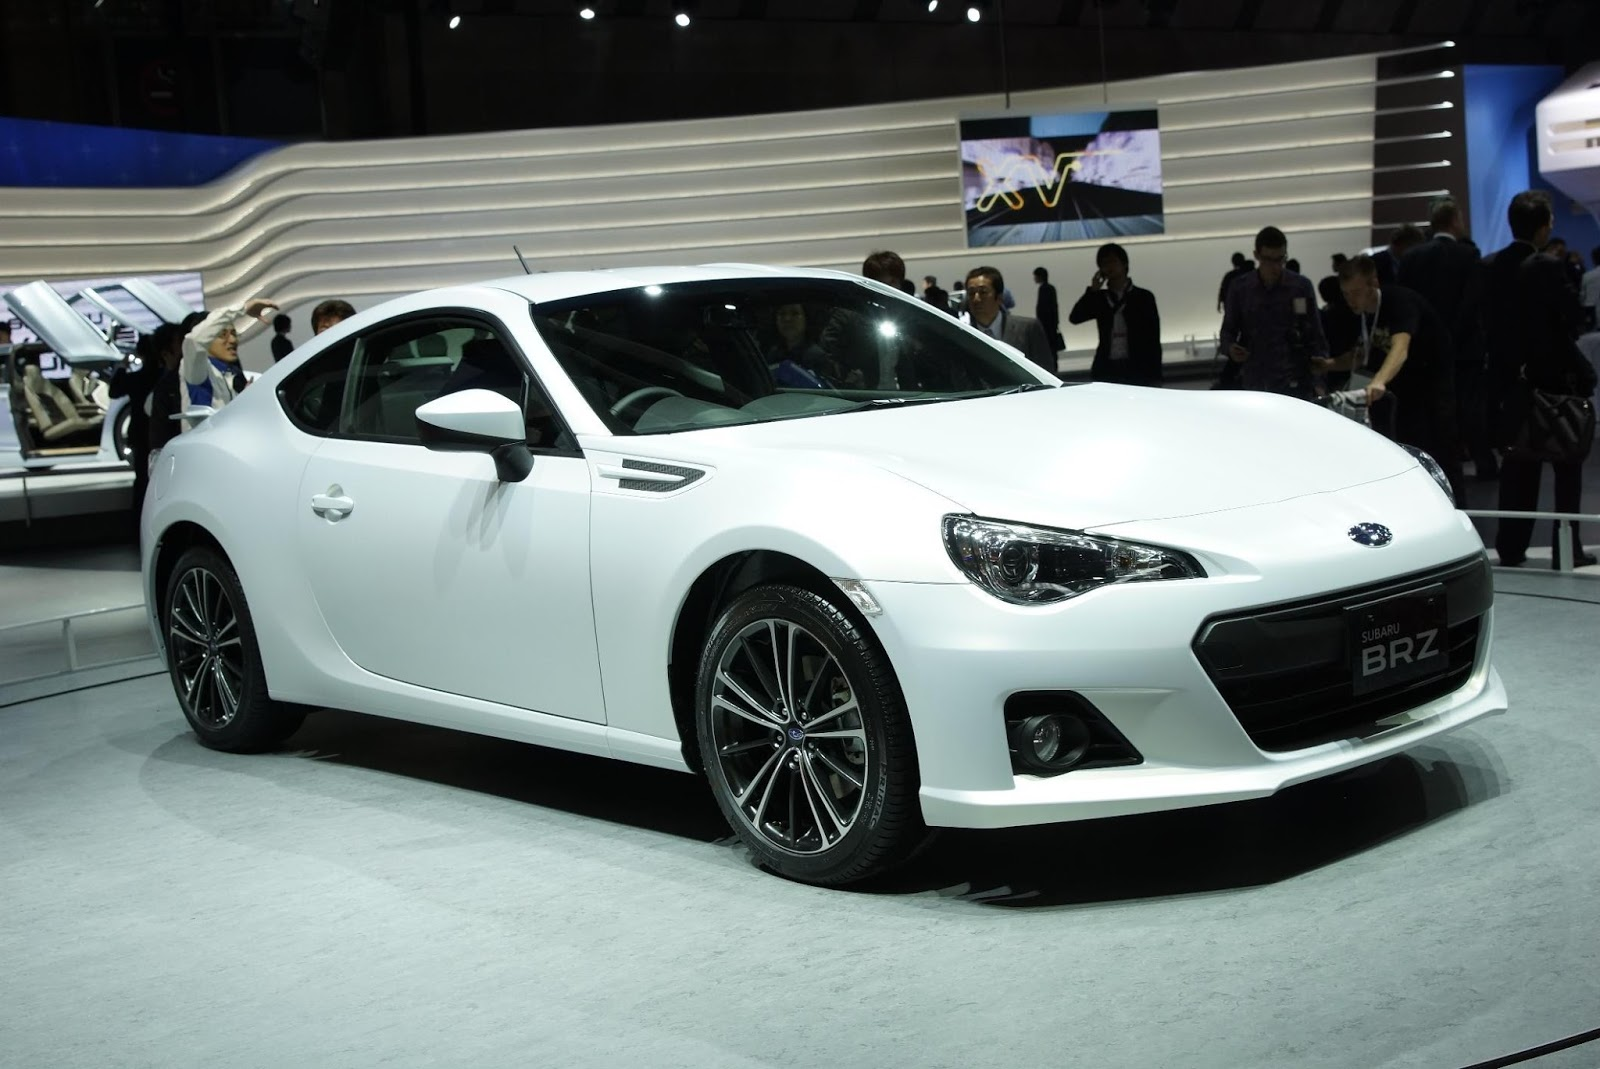 2015 subaru brz turbo 1080p wallpapers. Black Bedroom Furniture Sets. Home Design Ideas